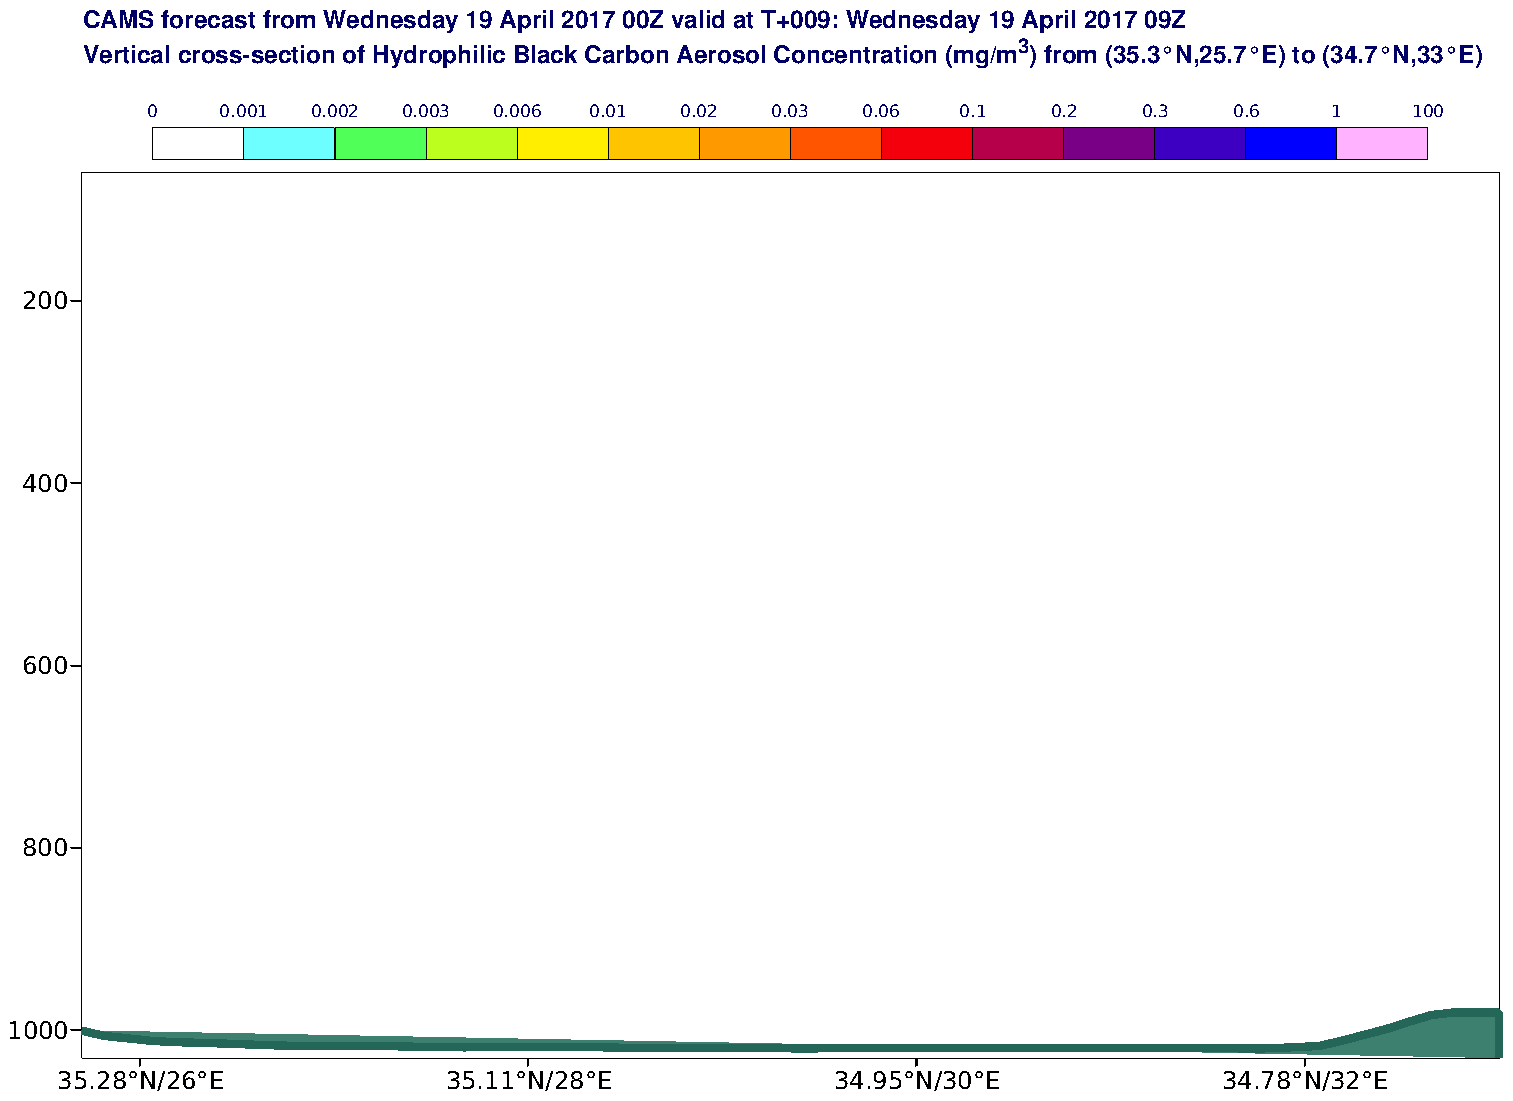 Vertical cross-section of Hydrophilic Black Carbon Aerosol Concentration (mg/m3) valid at T9 - 2017-04-19 09:00